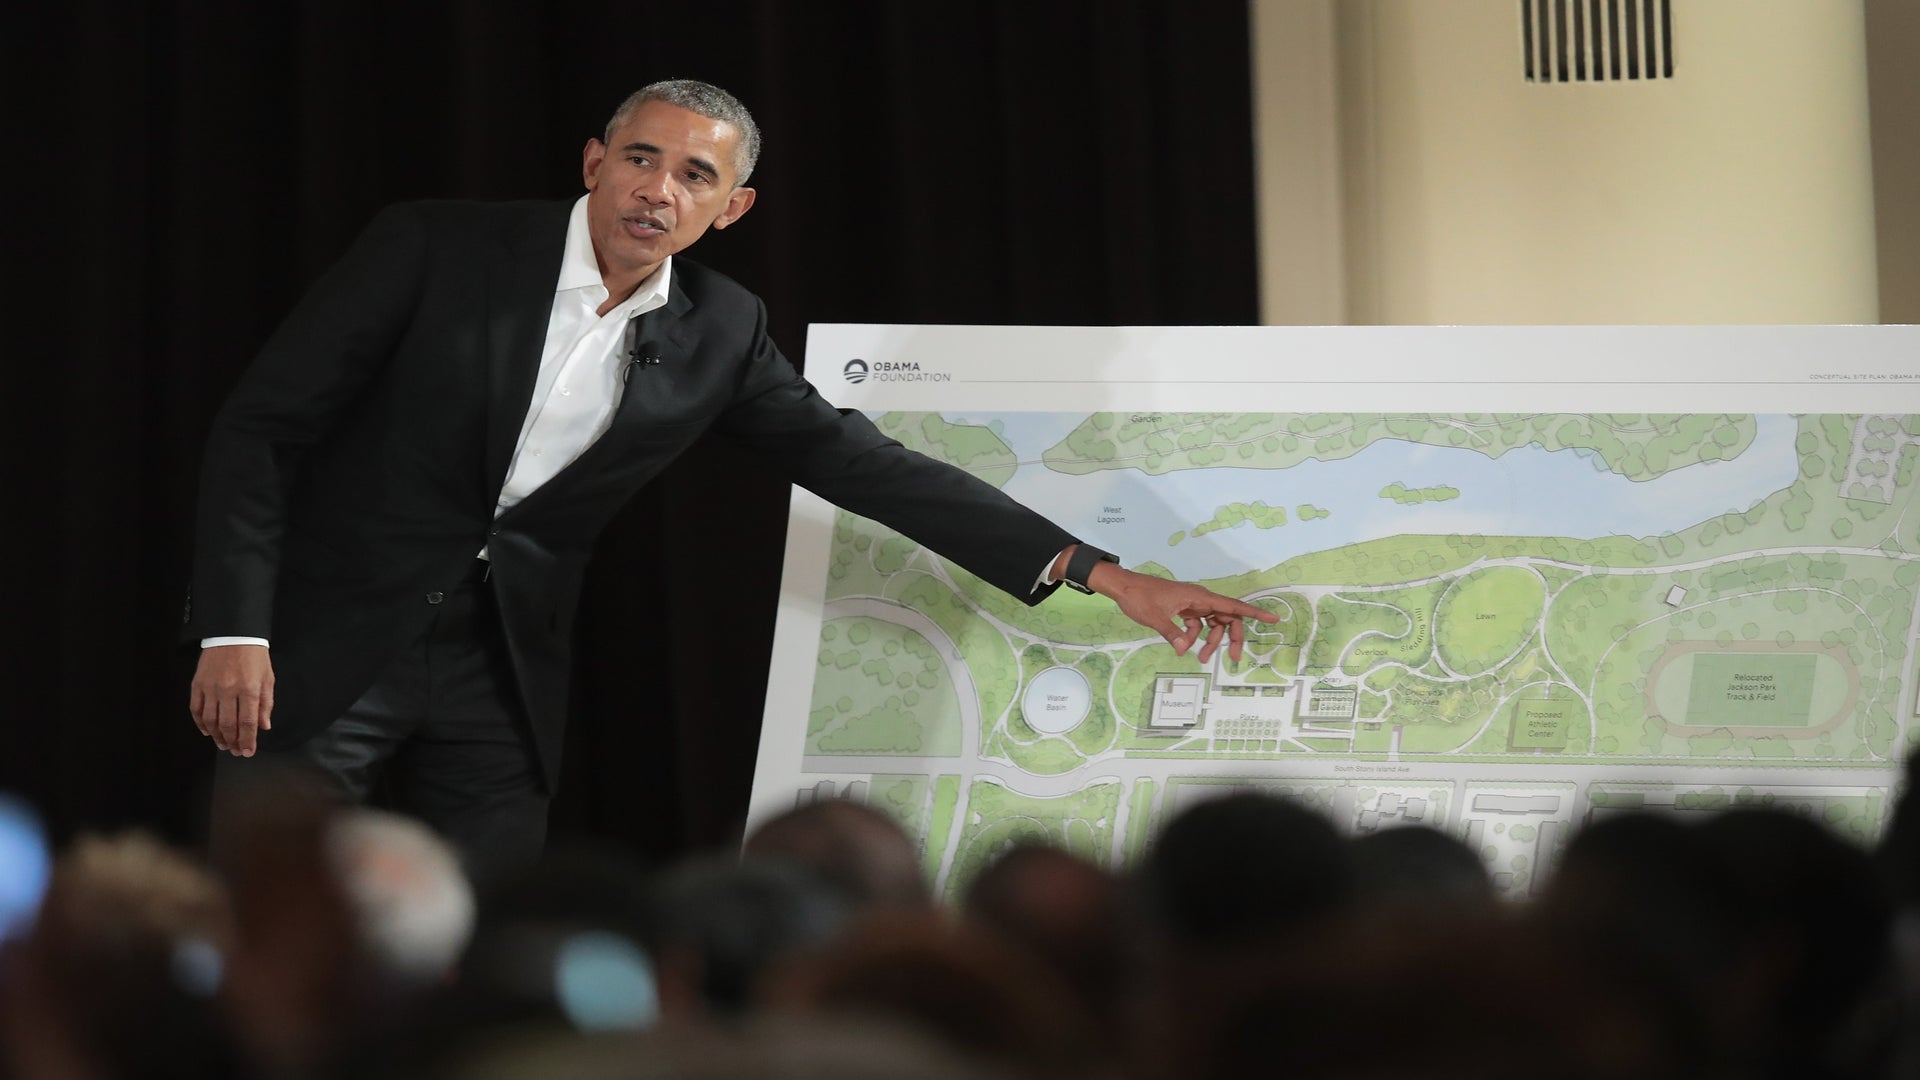 The Obama Foundation Moves Ahead With Presidential Center After Release Of New Design